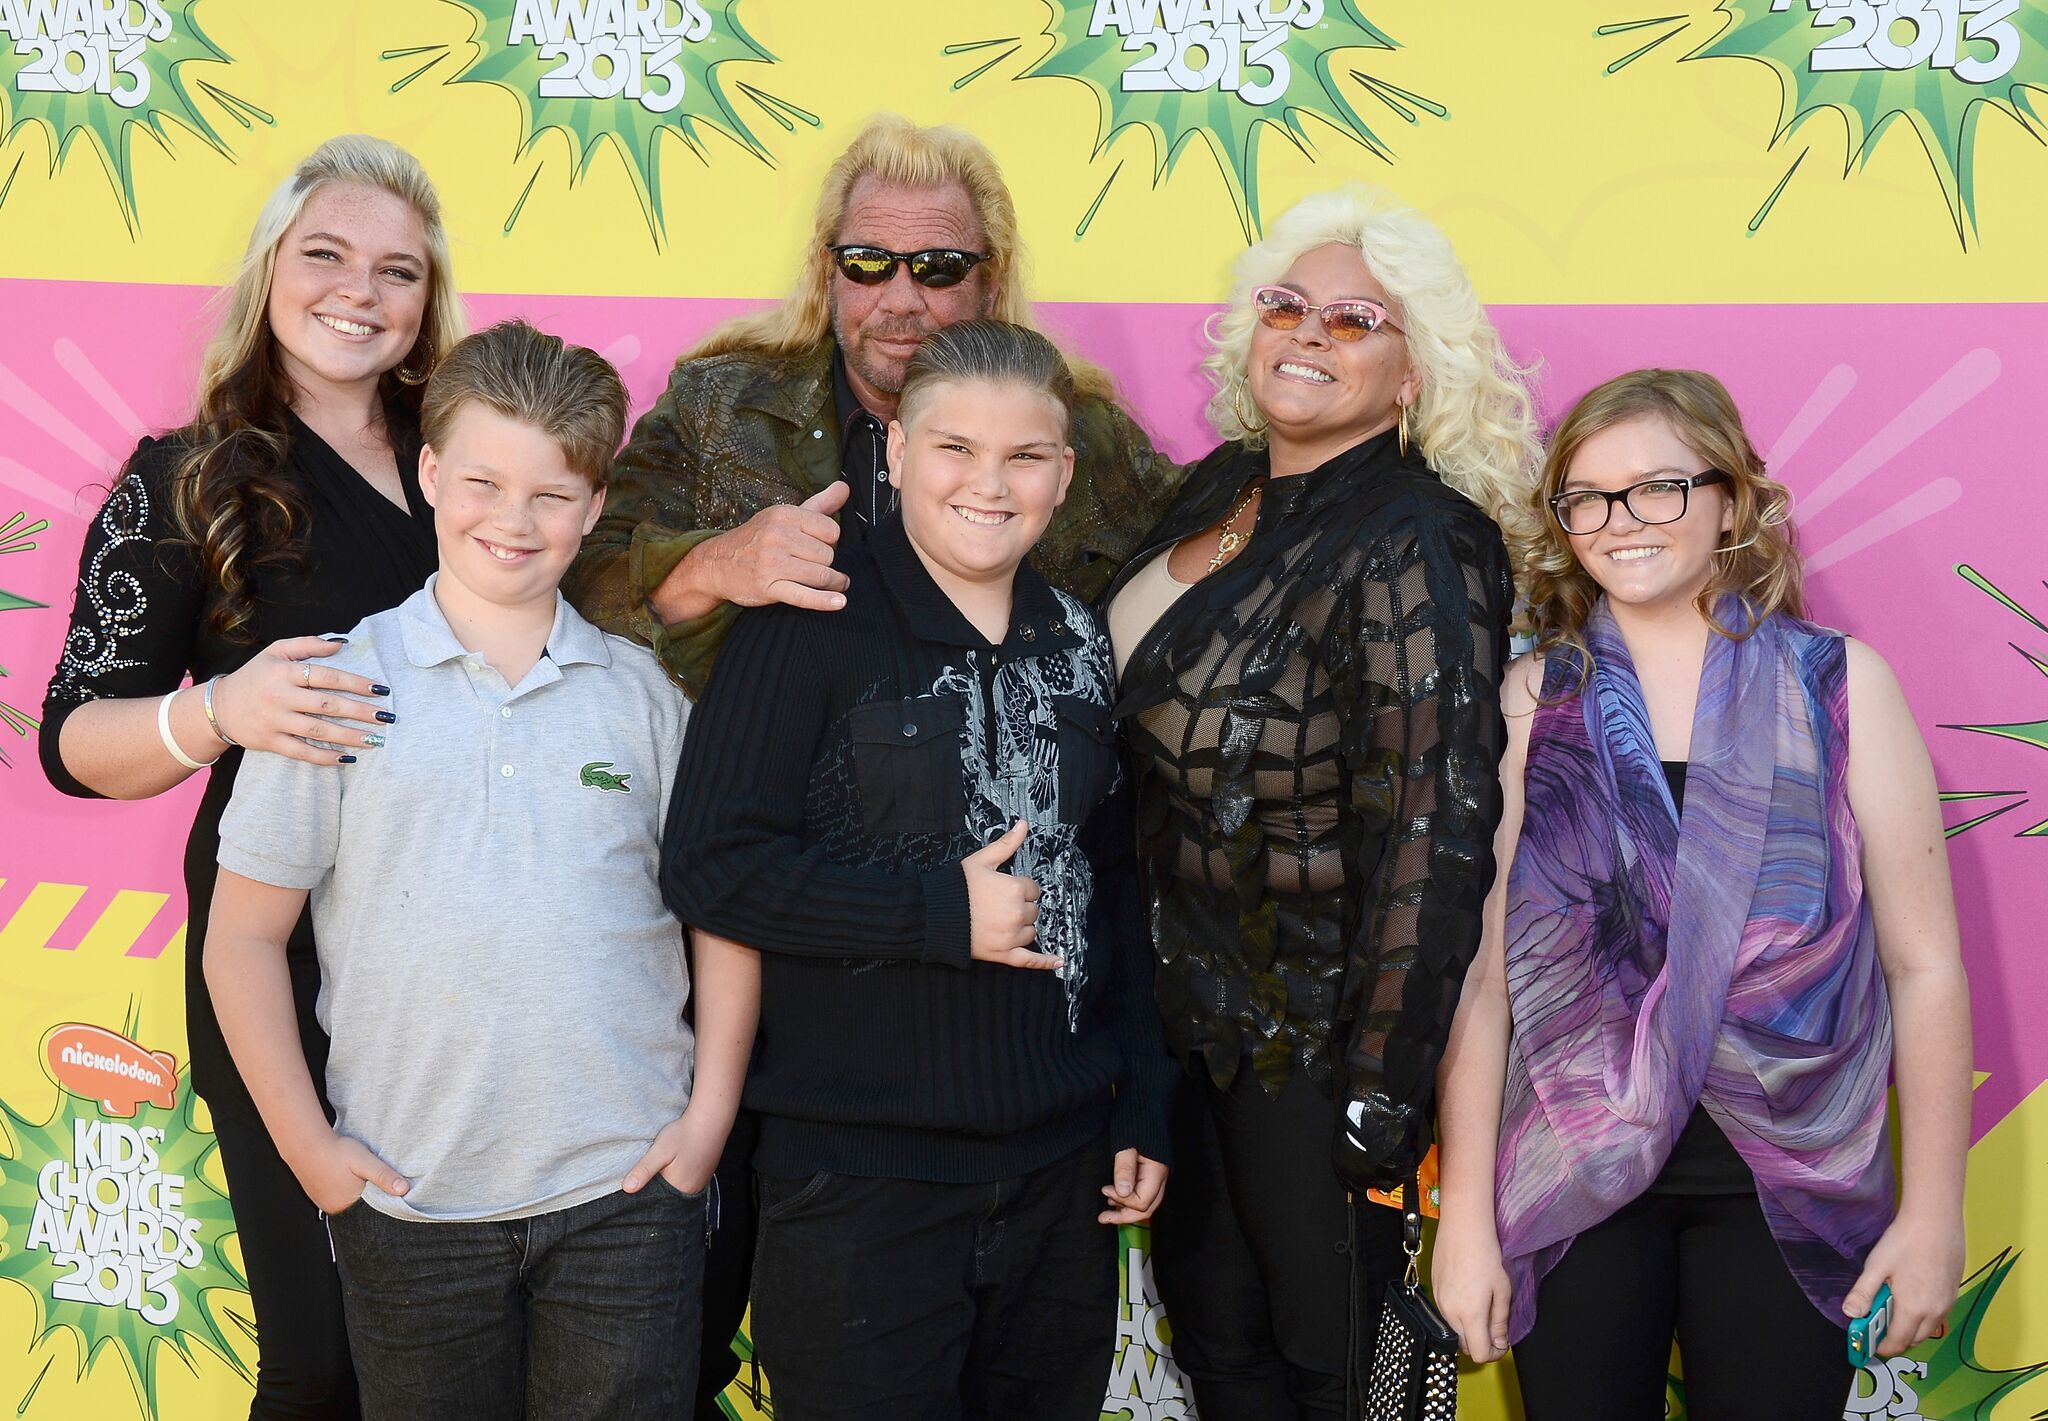 TV personality Duane 'Dog' Chapman (C) and family arrive at Nickelodeon's 26th Annual Kids' Choice Awards at USC Galen Center  | Getty Images / Global Images Ukraine